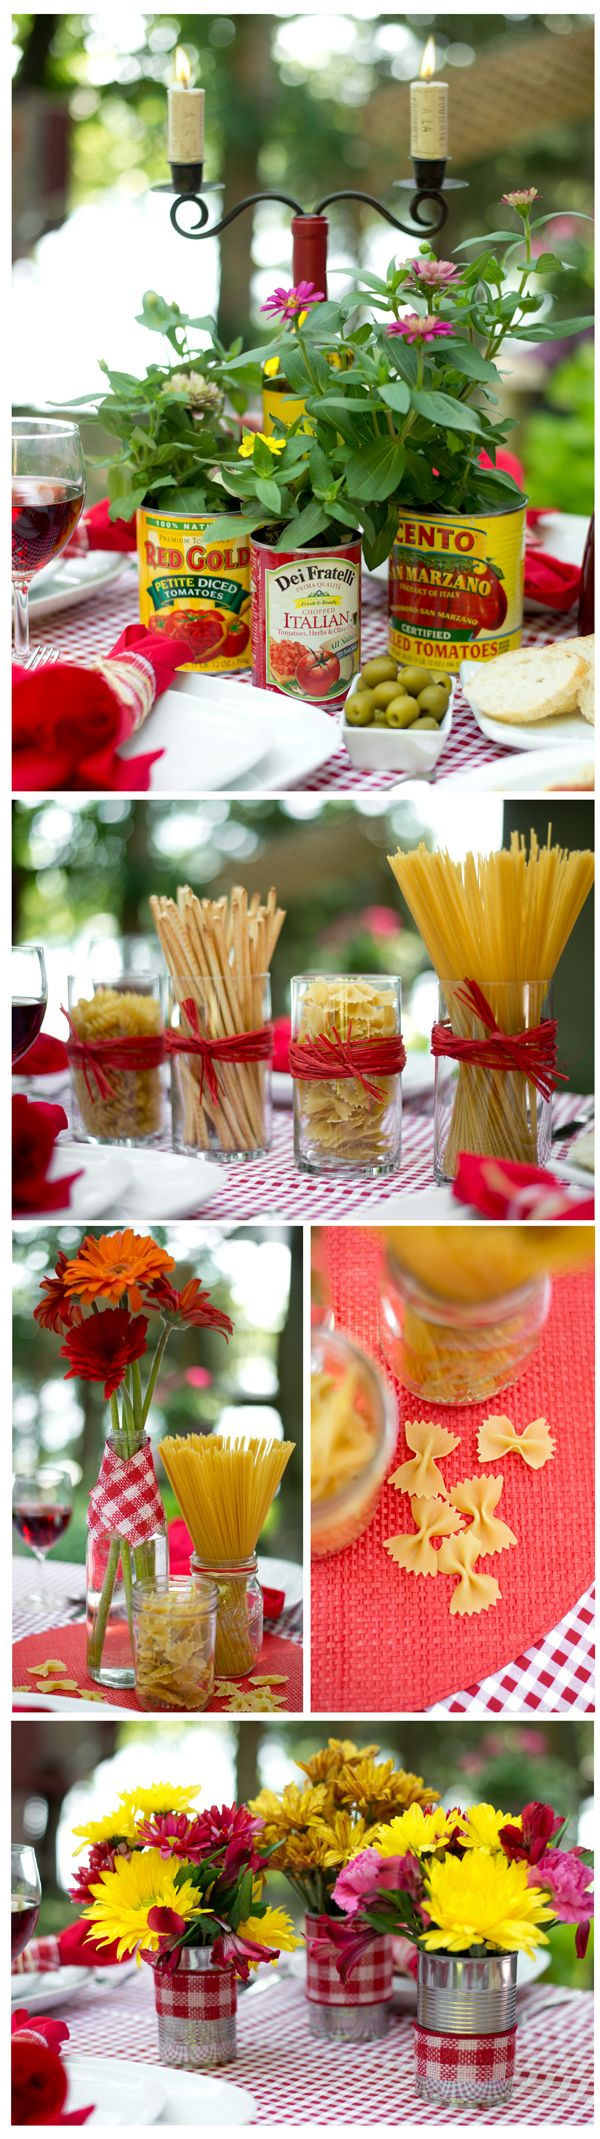 Budget Centerpiece Ideas for an Italian Dinner Theme | Pinterest ...